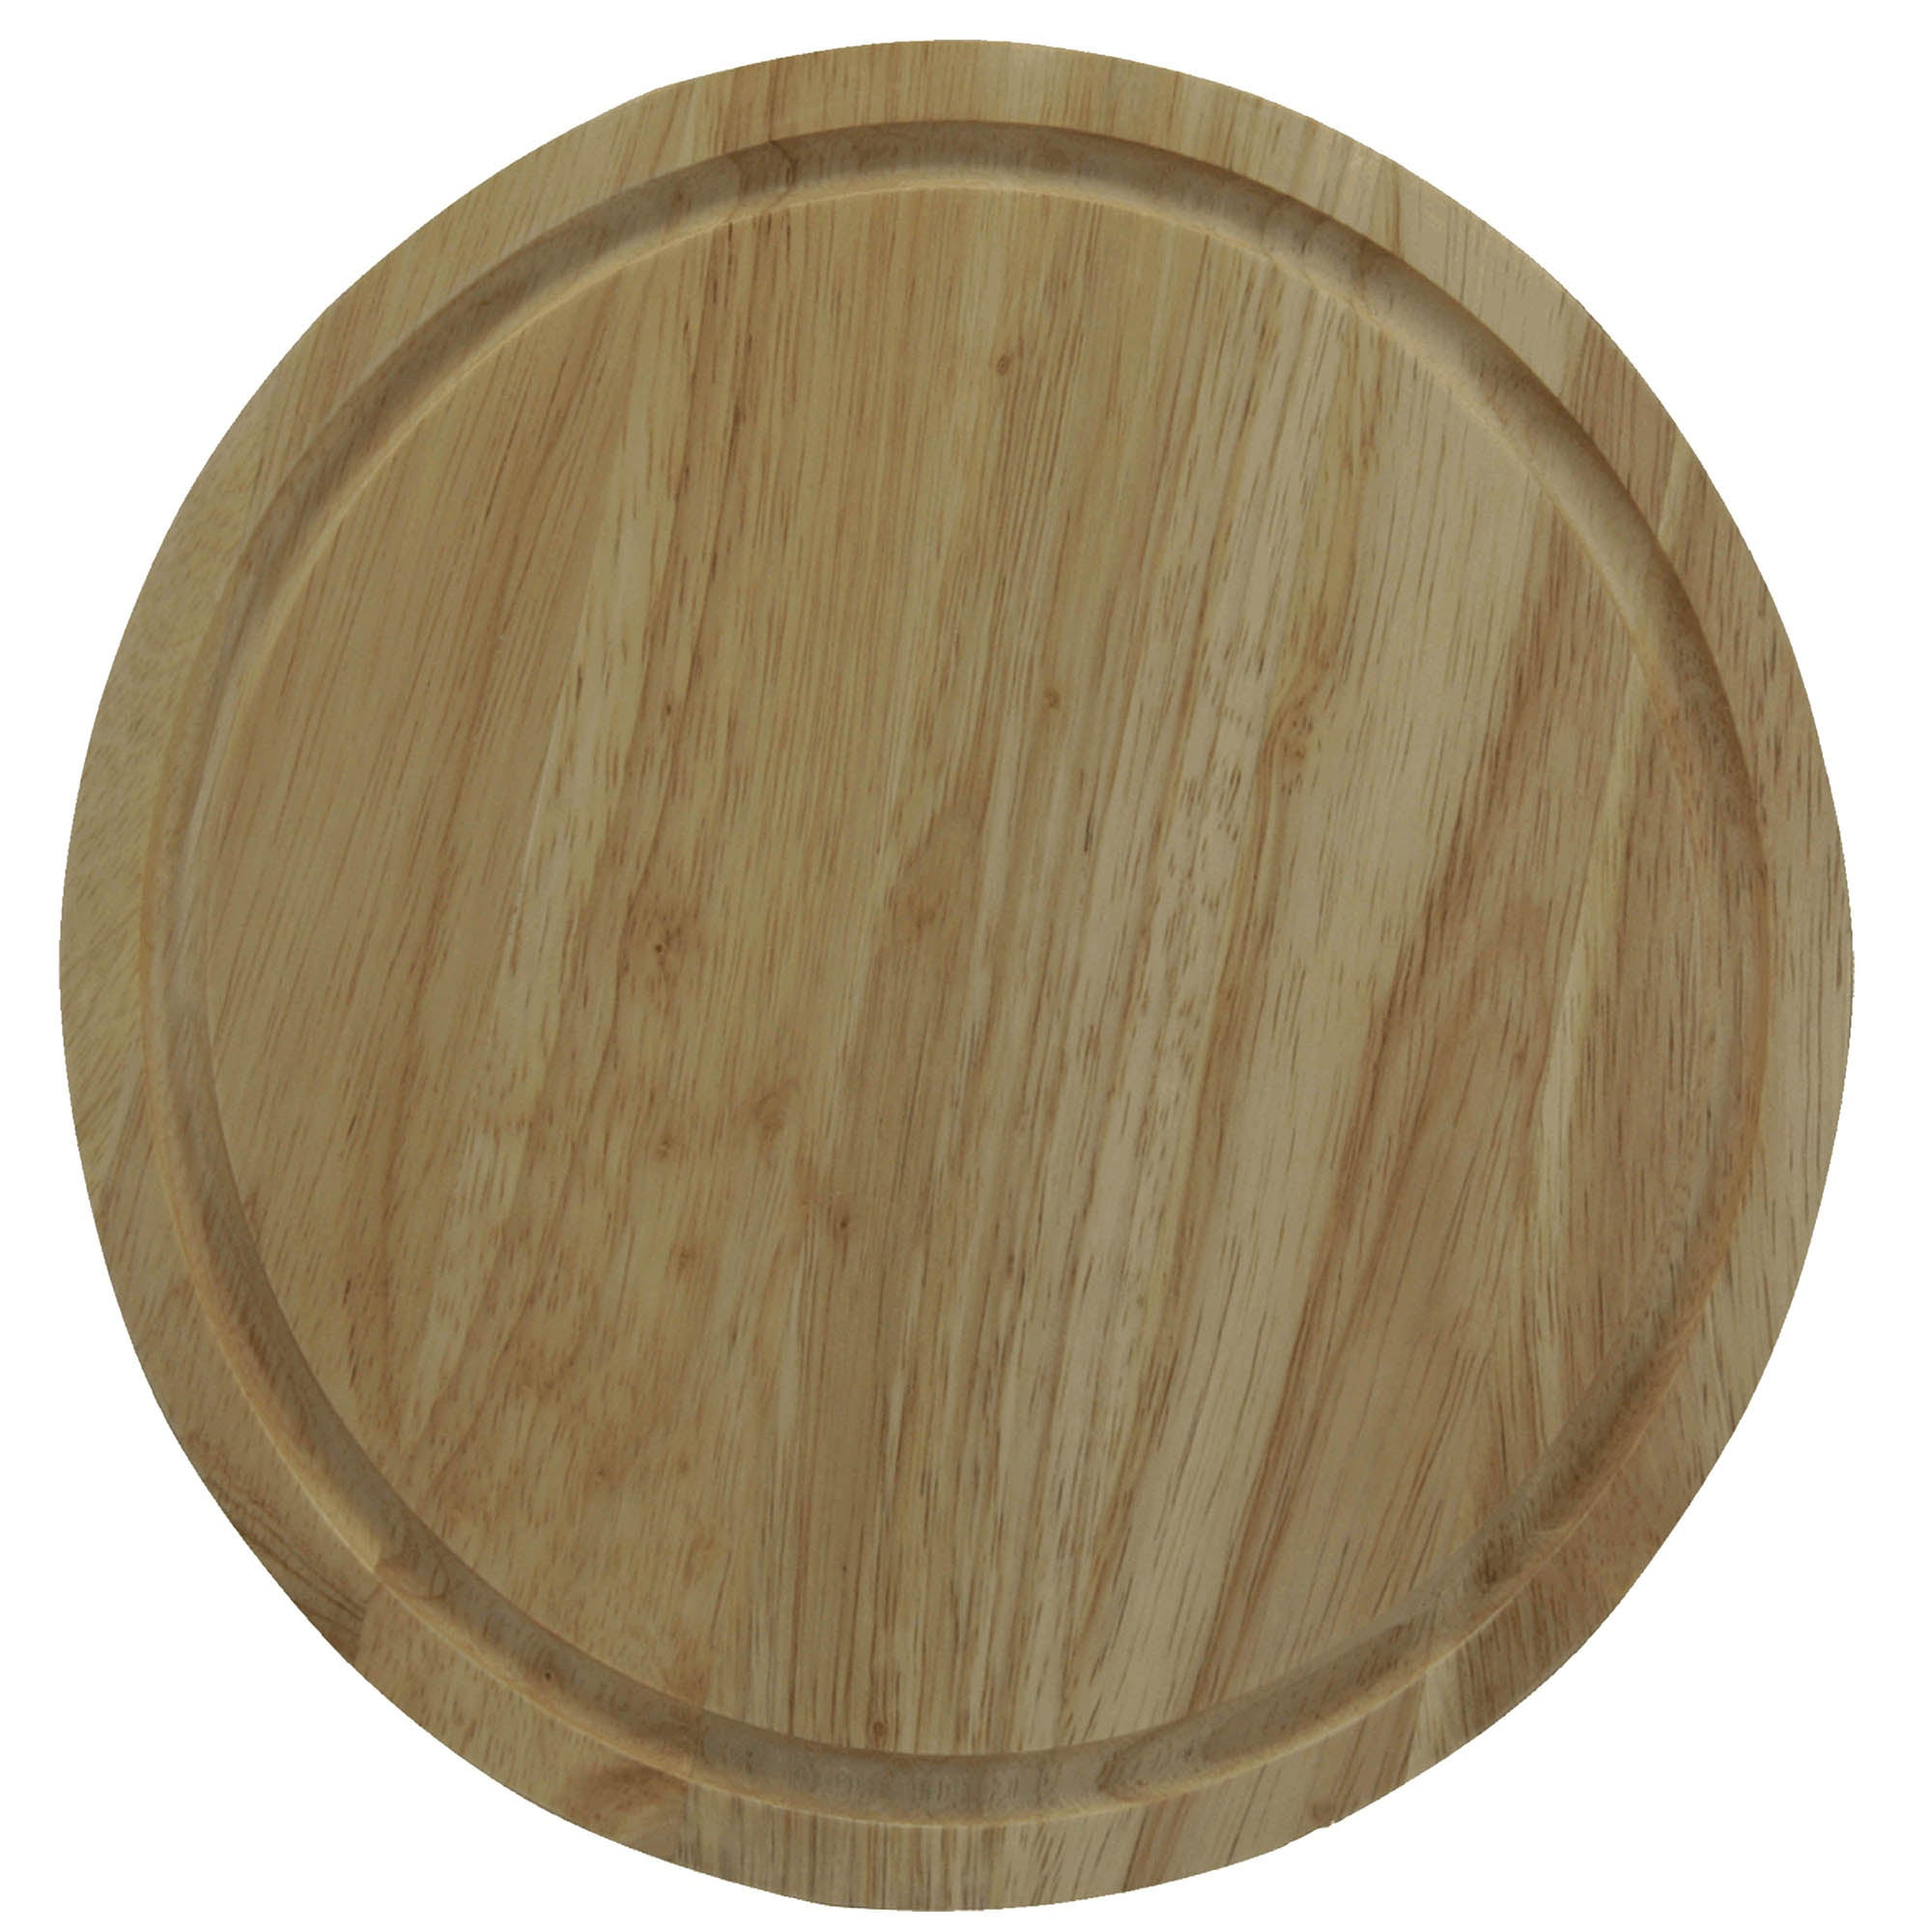 Rubber Wood 30cm Chopping Board